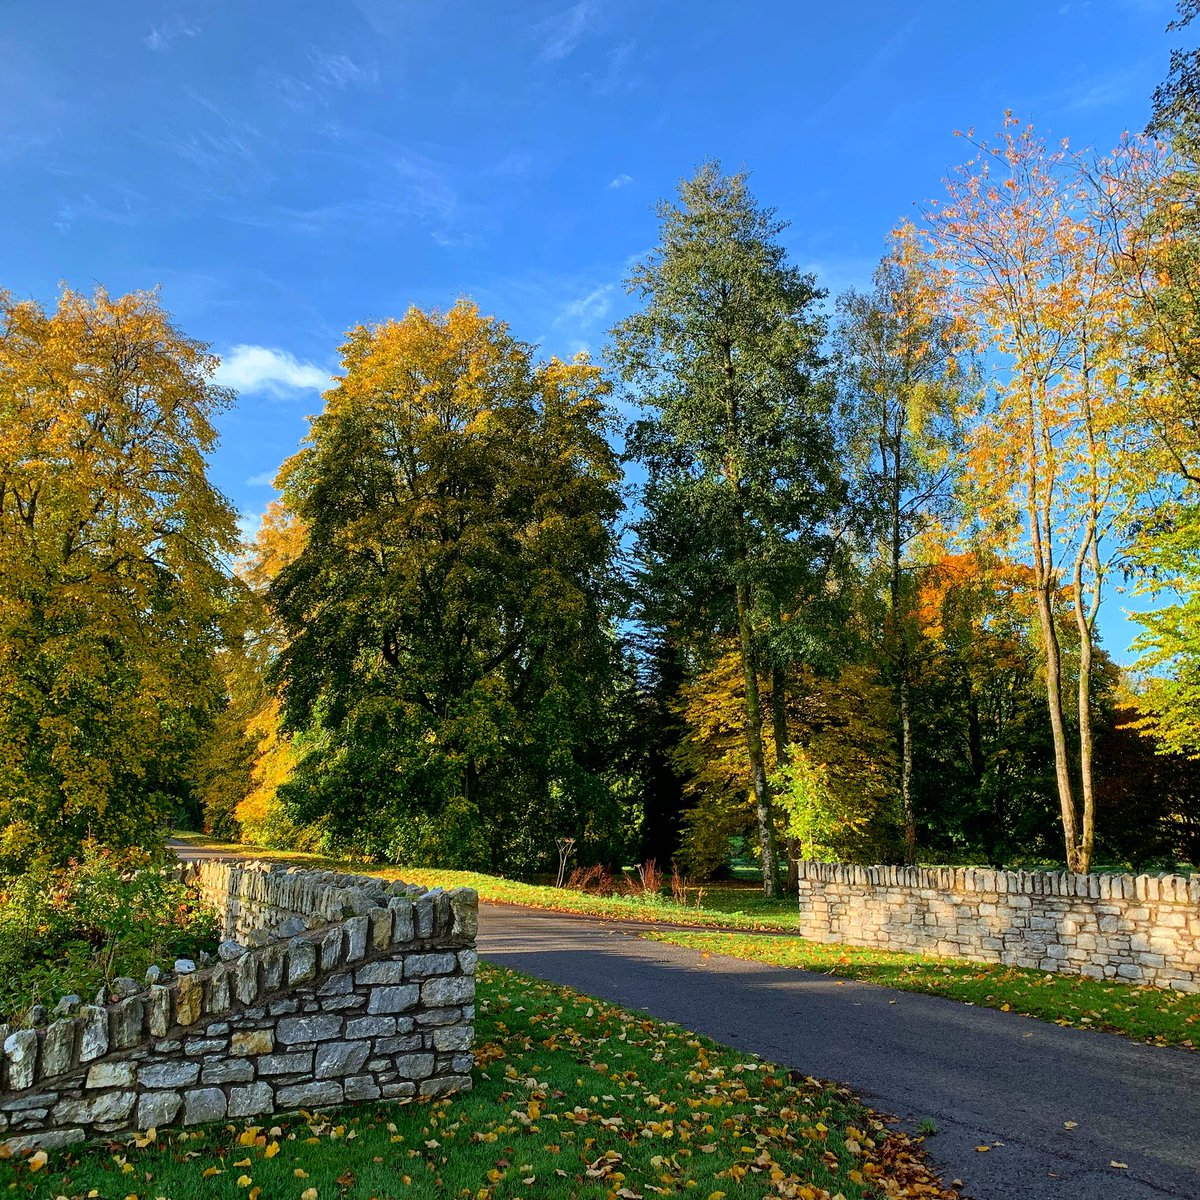 Our opening times have changed. We will now be closed at 5pm and last admission is at 4pm!  #blarneycastleandgardens #purecorkwelcomes #cork #ireland #like #follow #pictureoftheday #picoftheday #photography #autumn #autumnleaves #castle https://t.co/VxneWuZucc